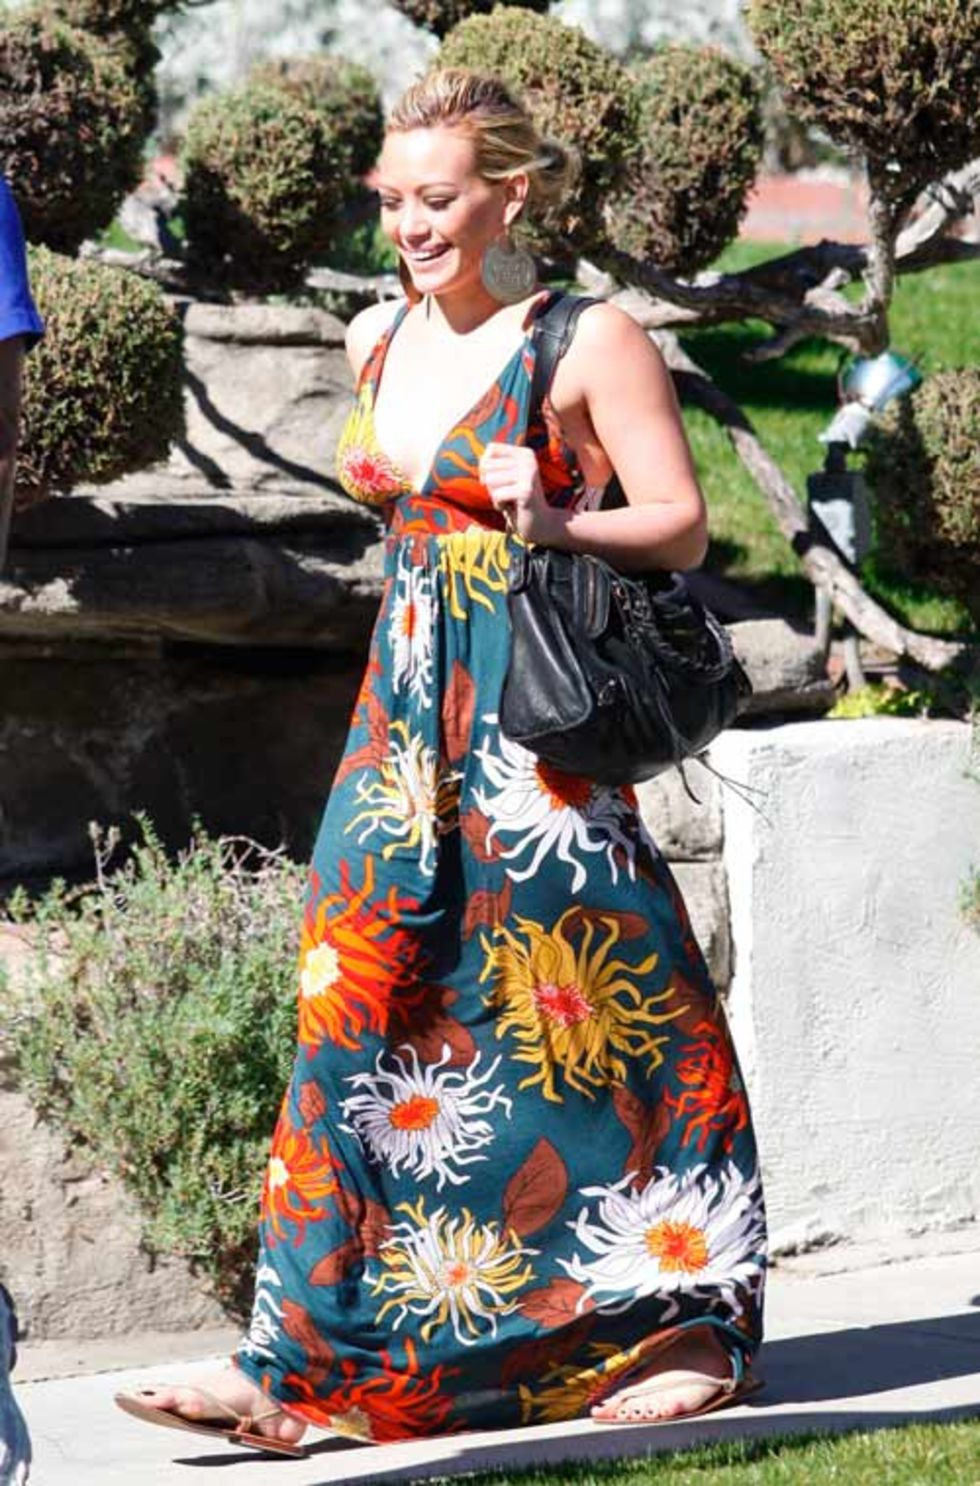 hilary-duff-cleavage-candids-in-toluca-lake-mq-01